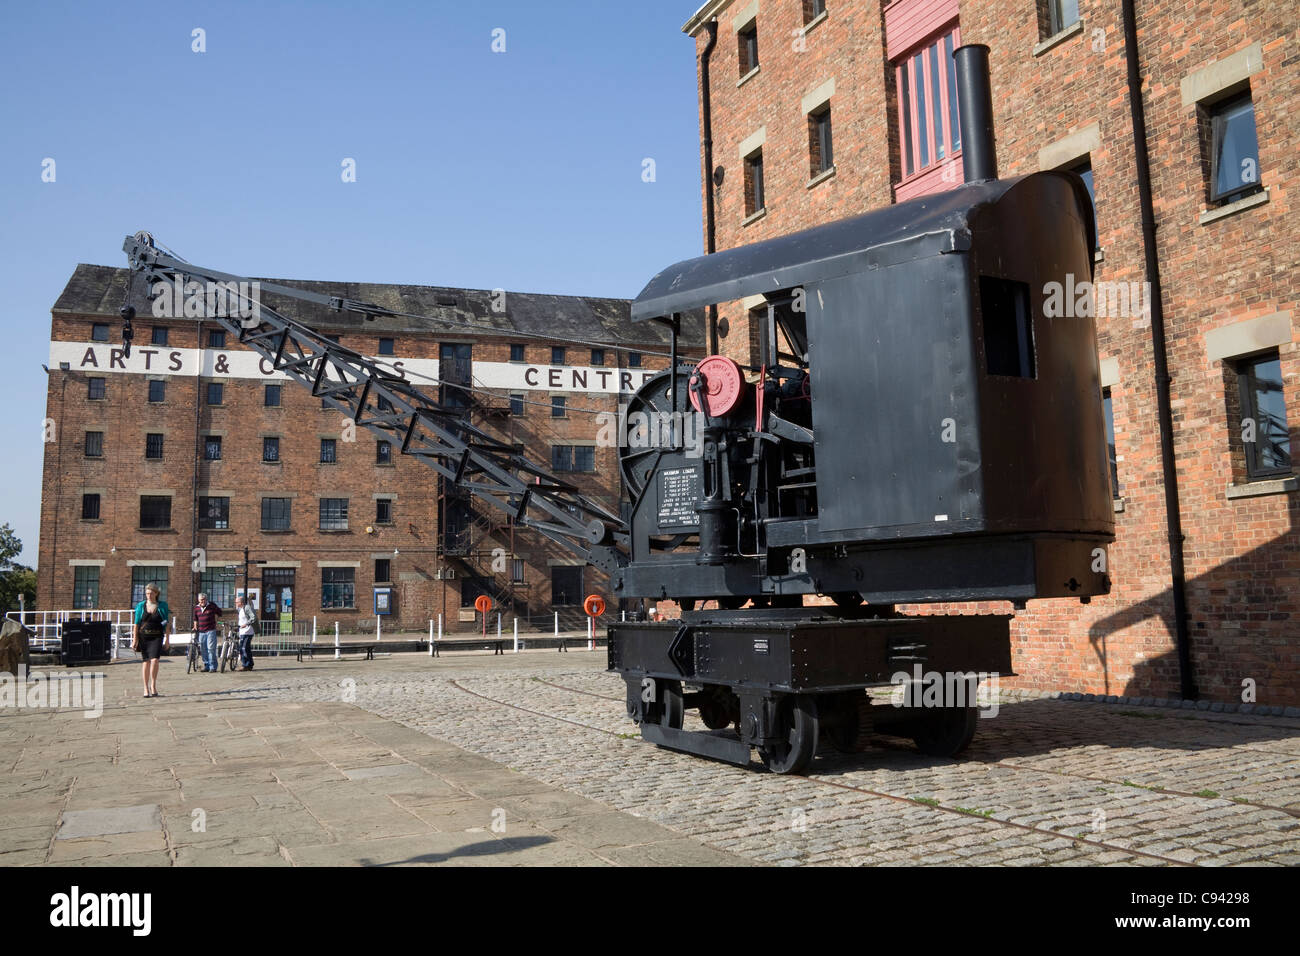 Gloucester England Crane on quayside of renovated Dock Basin with Arts and Crafts Antiques Centre behind Stock Photo